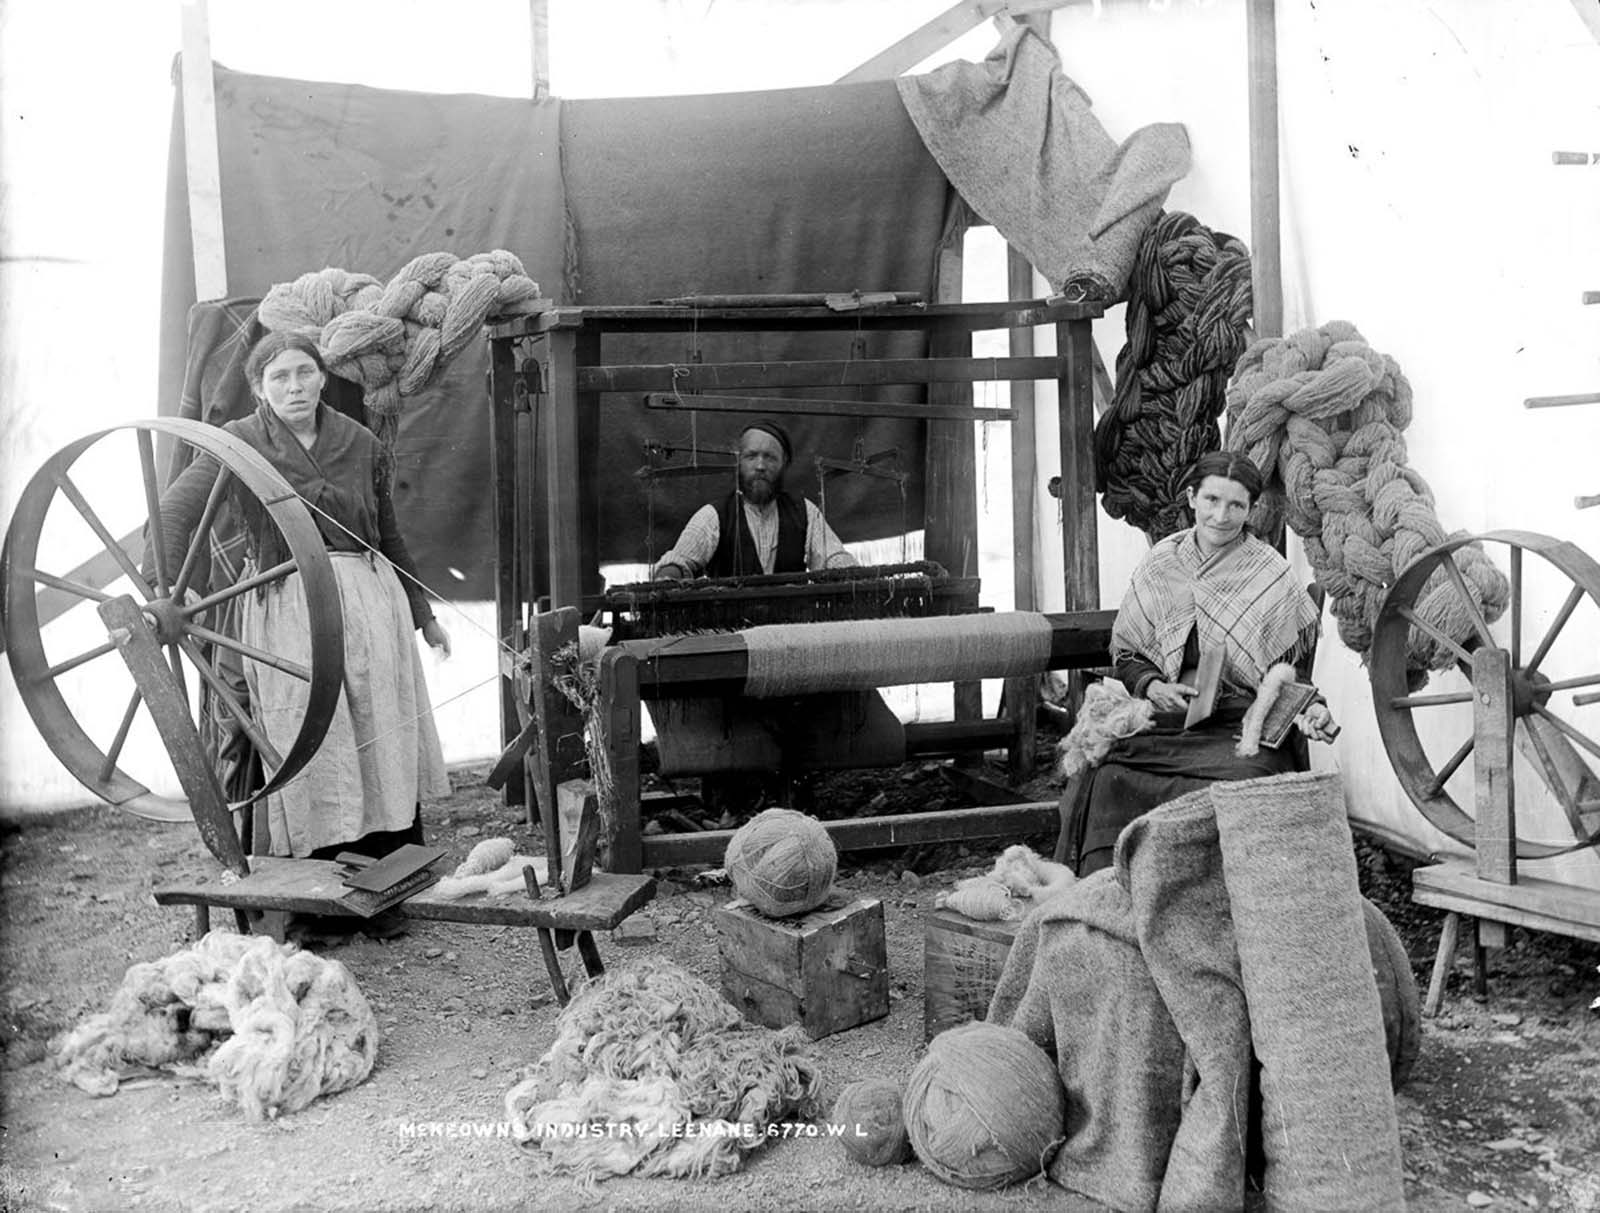 A wool operation in Leenane, County Galway. 1910.